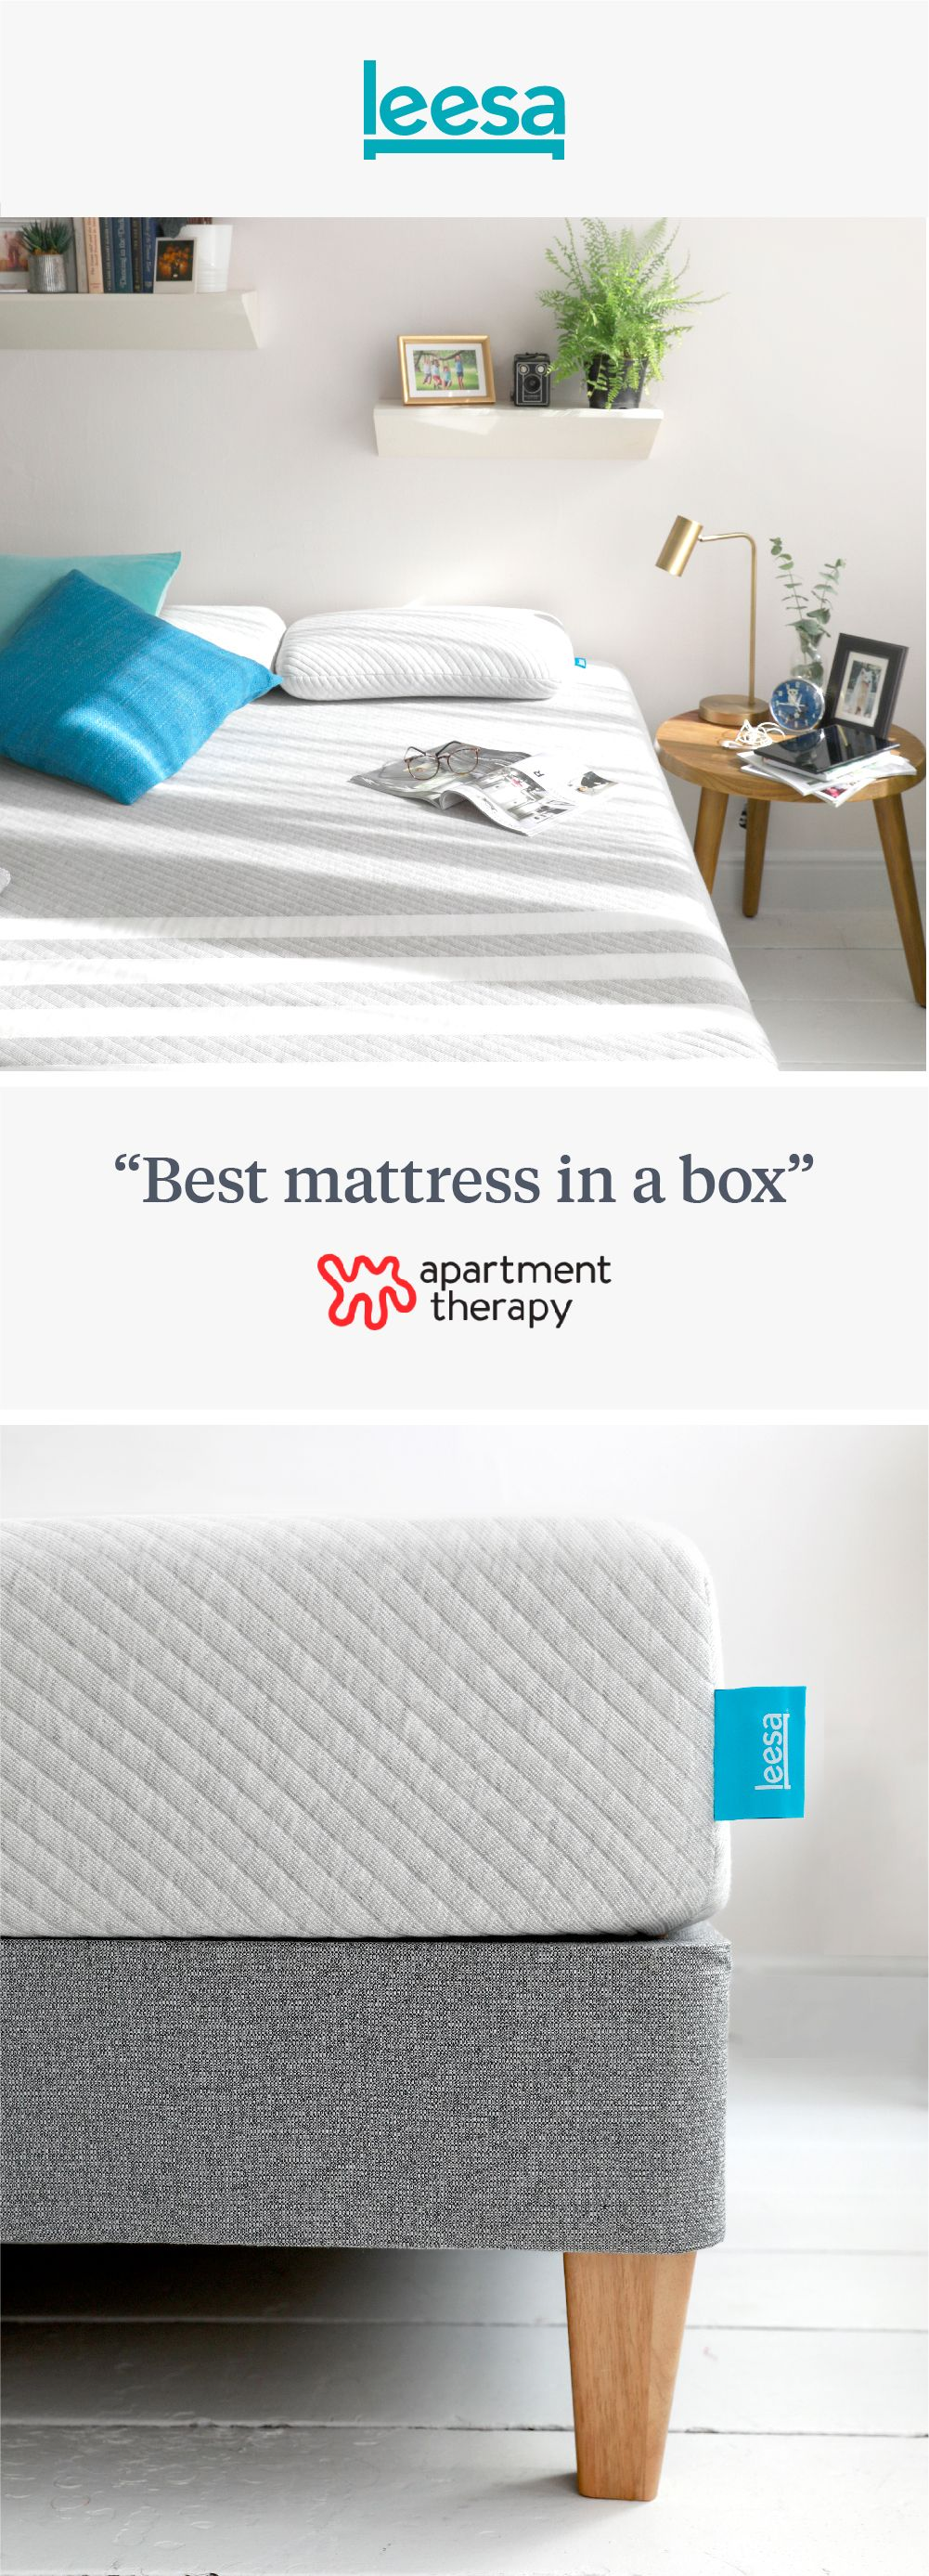 Get 150 Off A Leesa Mattress Plus A Free Leesa Pillow For A Limited Time During Our Sale A Bet Living Room Decor Rustic Home Decor Bedroom Natural Home Decor